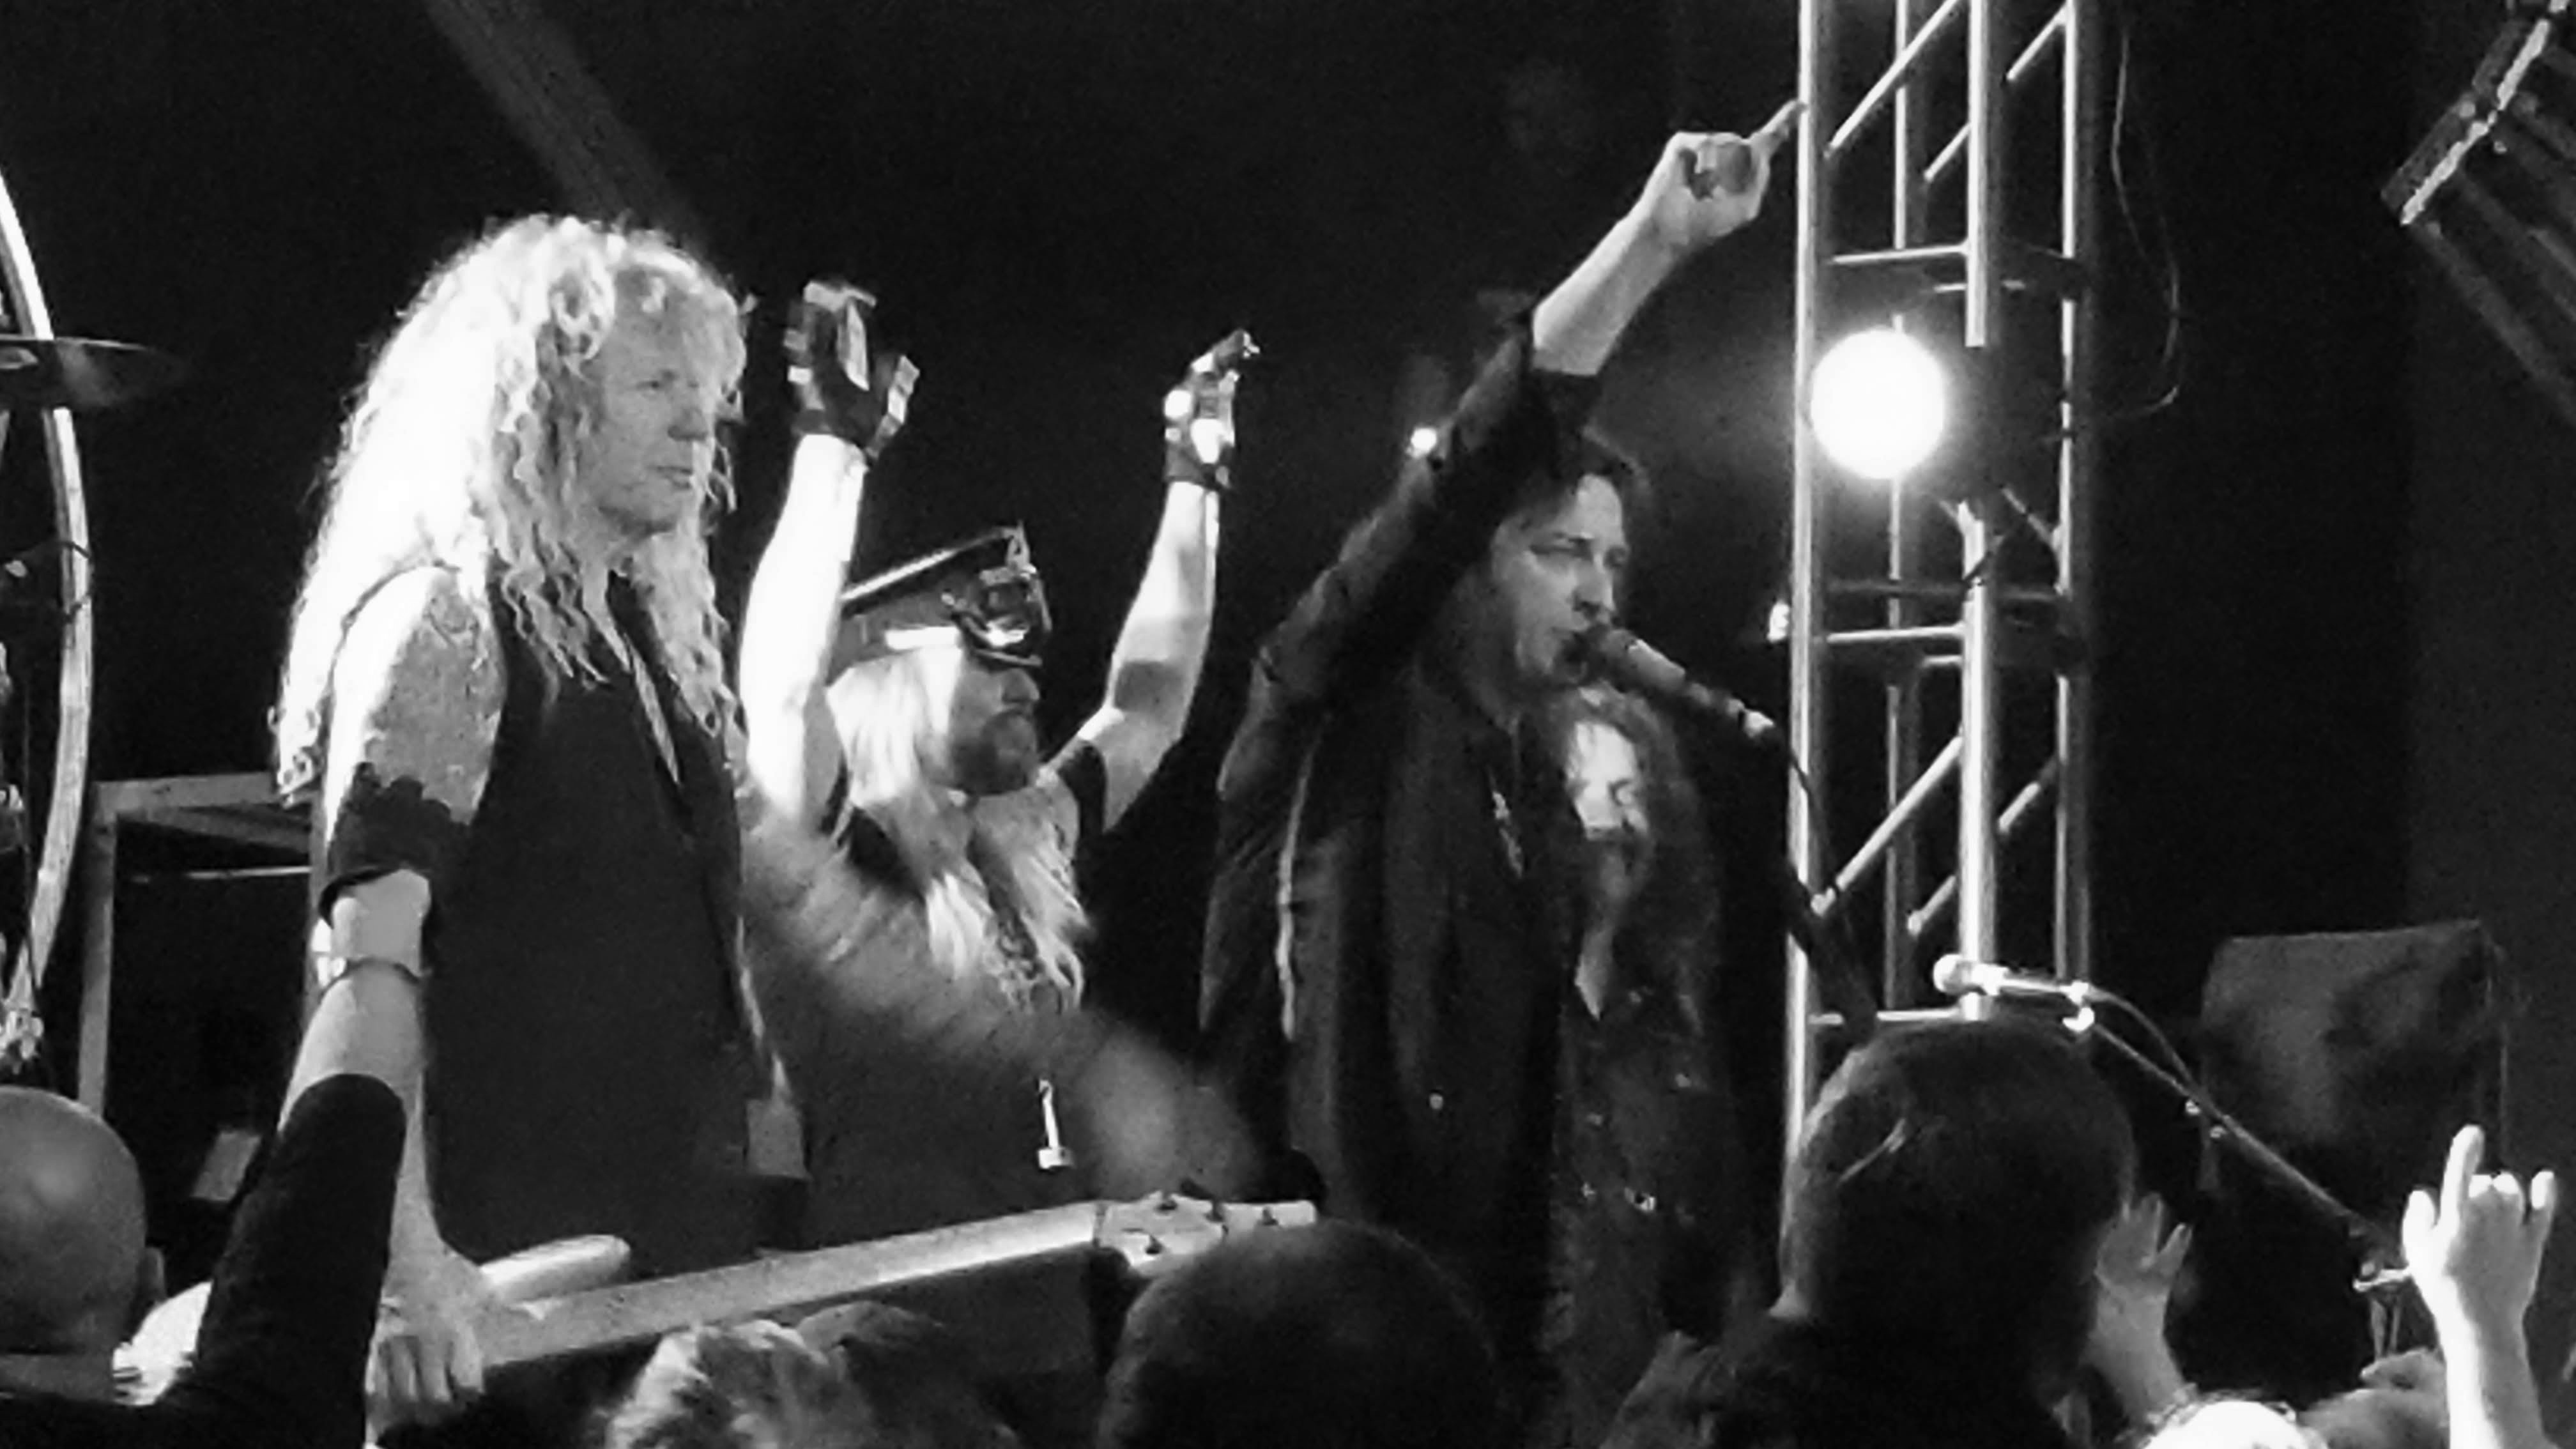 Stryper, moments after playing To Hell with the Devil on Friday, November 9th, 2018 in Portland, Oregon.